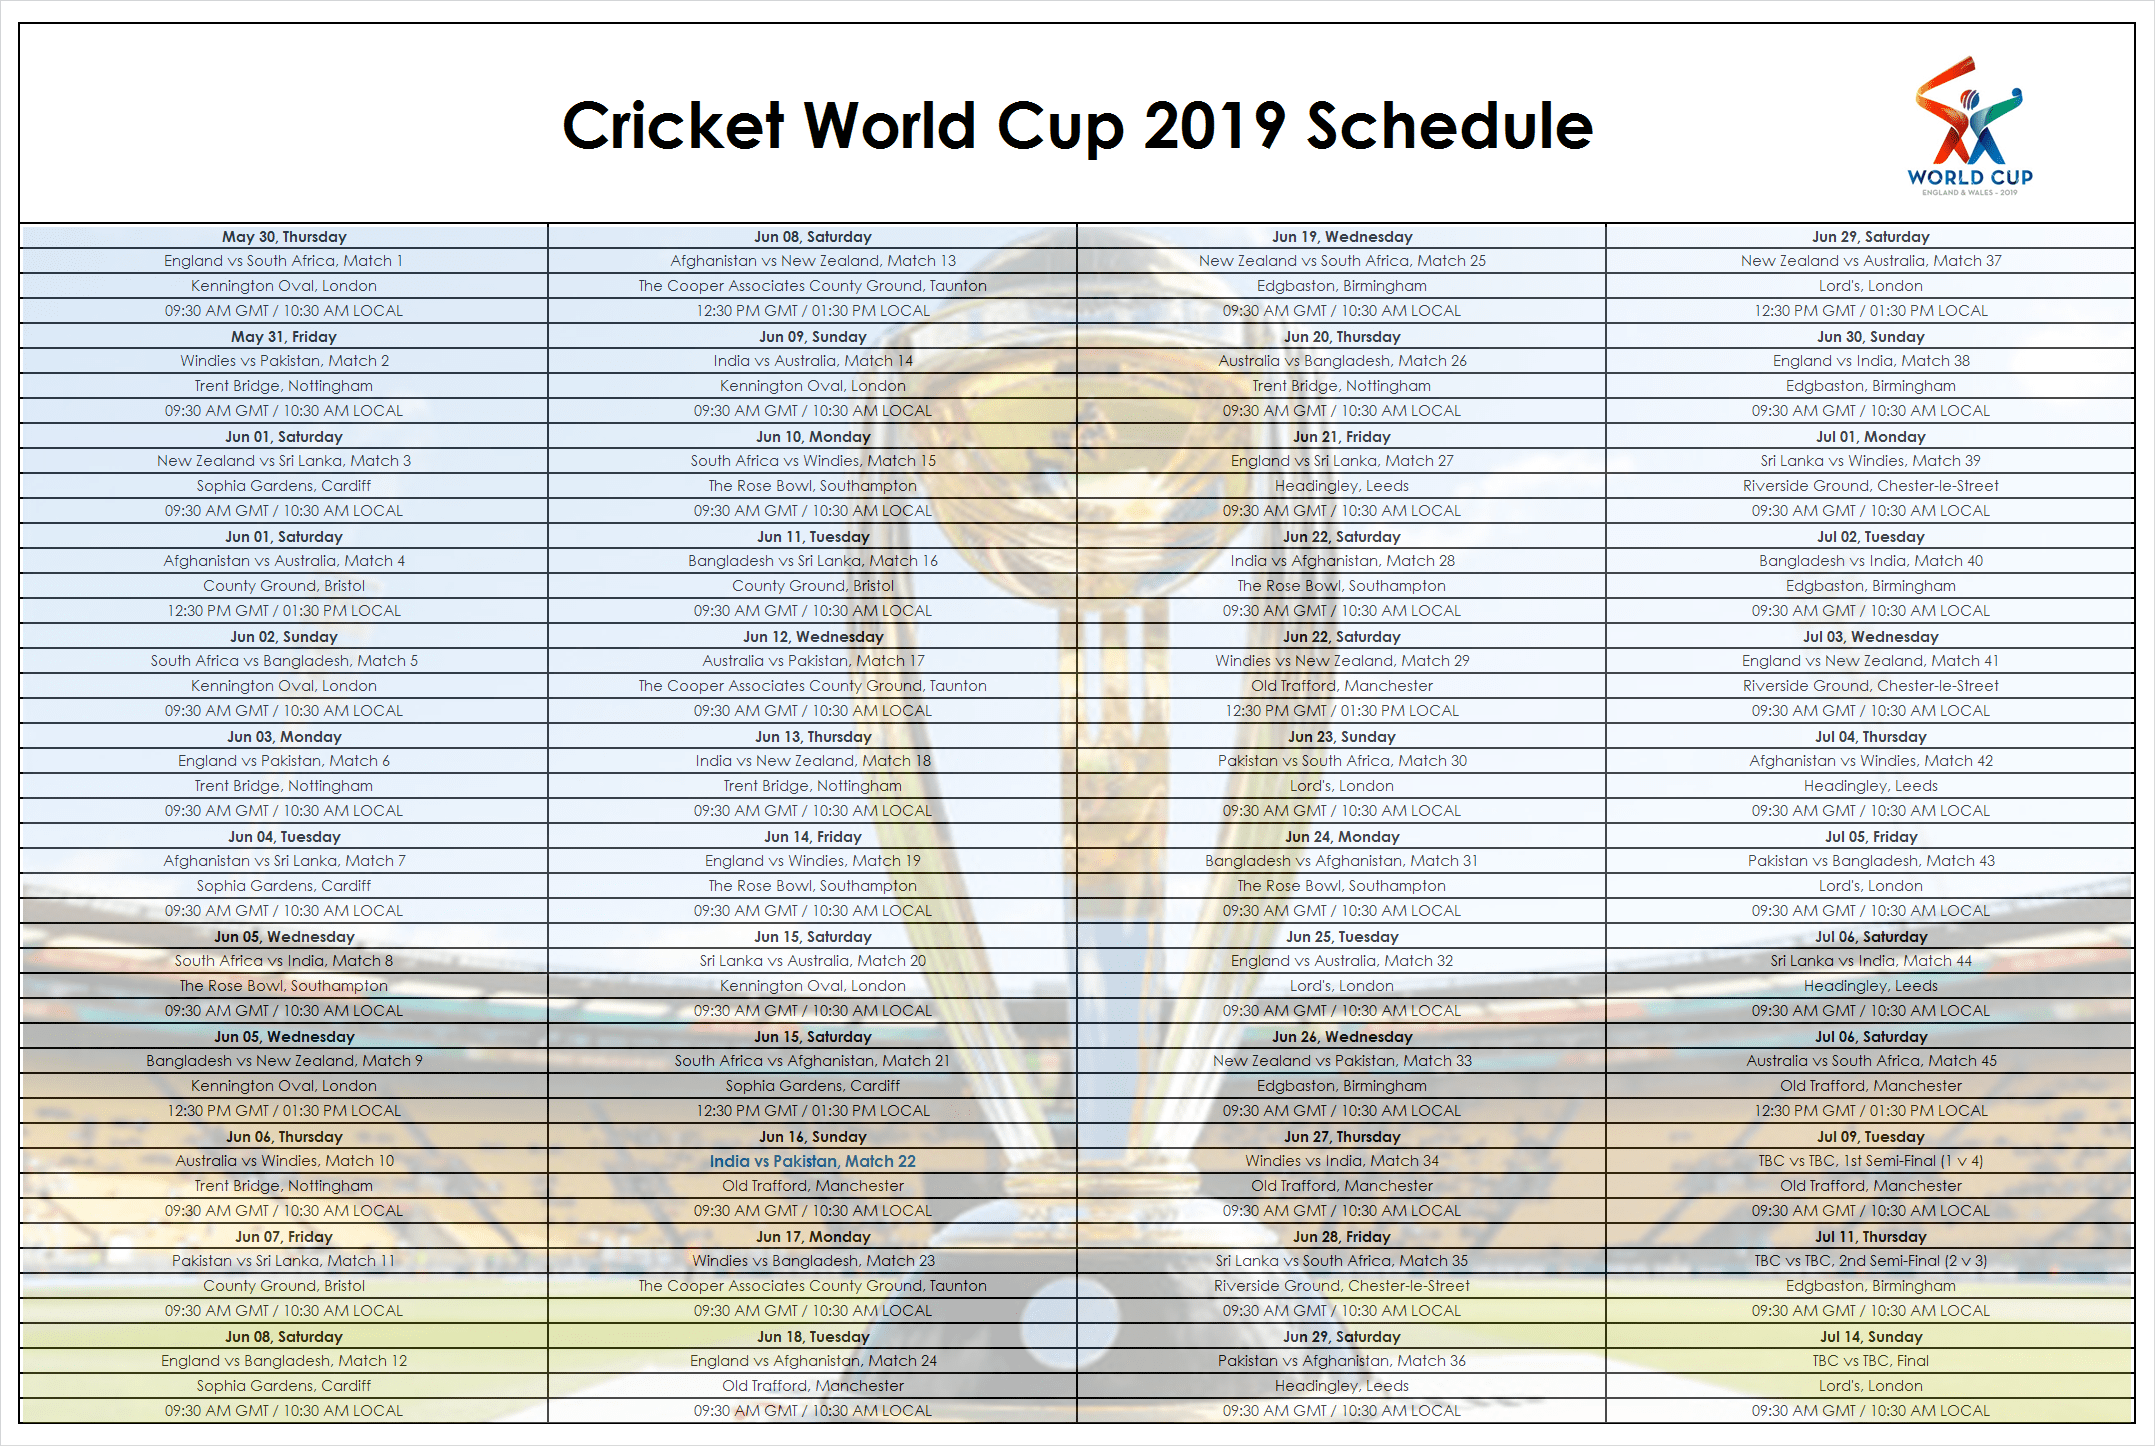 World Cup 2019 Schedule Images Pictures Photos And Wallpaper World Cup Fixtures Cricket World Cup World Cup